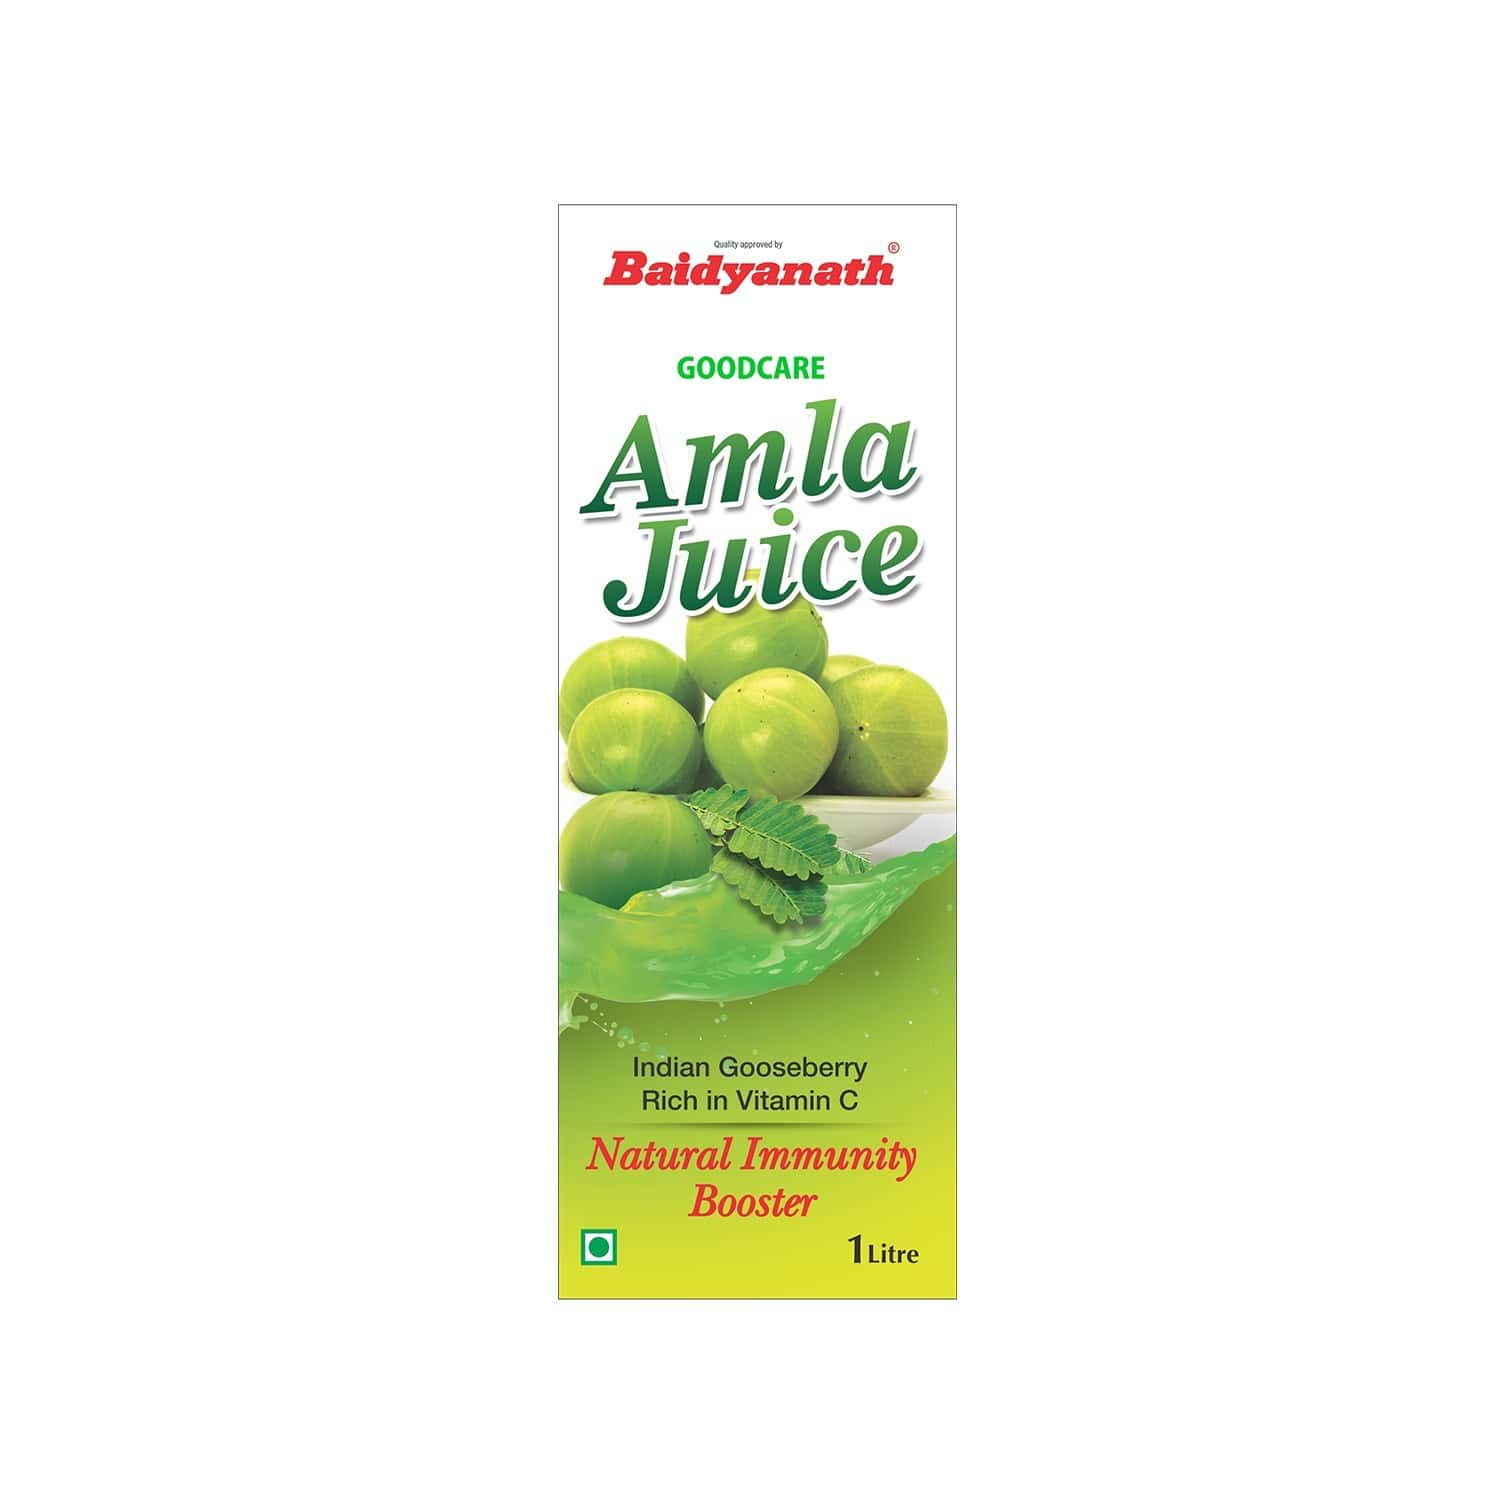 Baidyanath Amla Health Juice Bottle Of 1 L